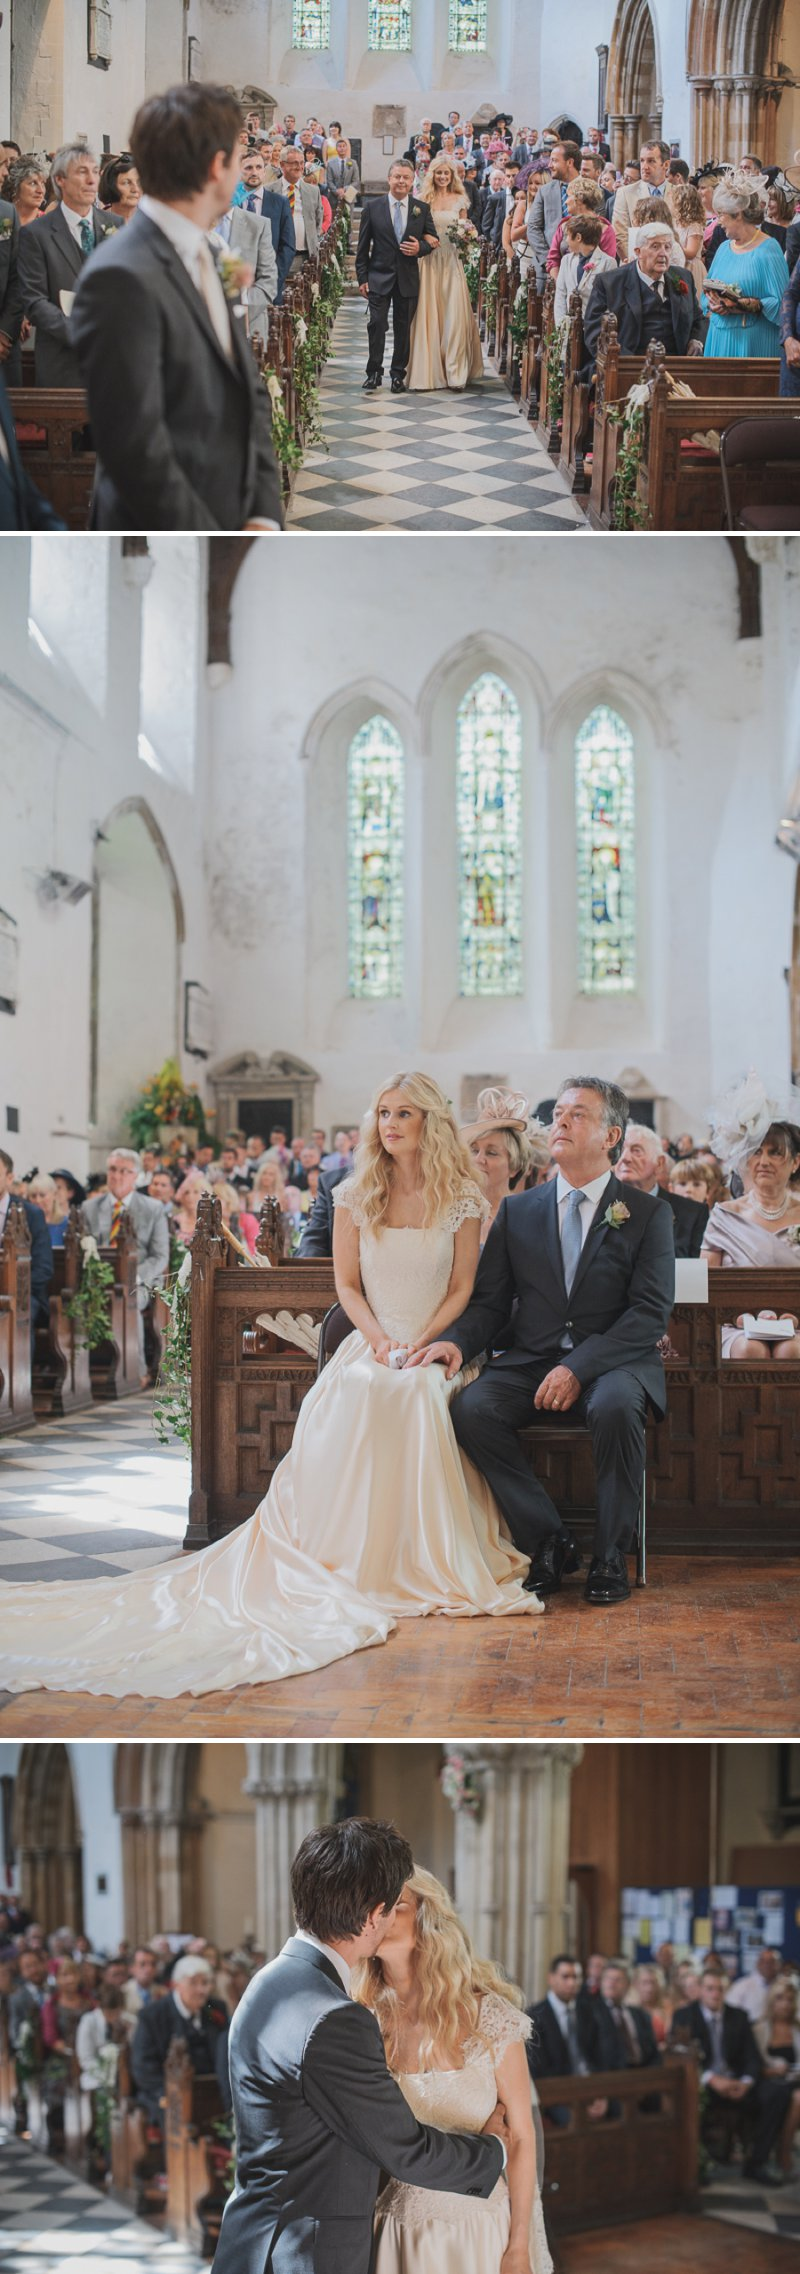 An Ethereal Summer Woodland Wedding At Hilton Court Gardens In Pembrokeshire Wales With A Silk Stephanie Allin Dress And An Amnesia Rose Bouquet Photographed By O&C Photography._0005